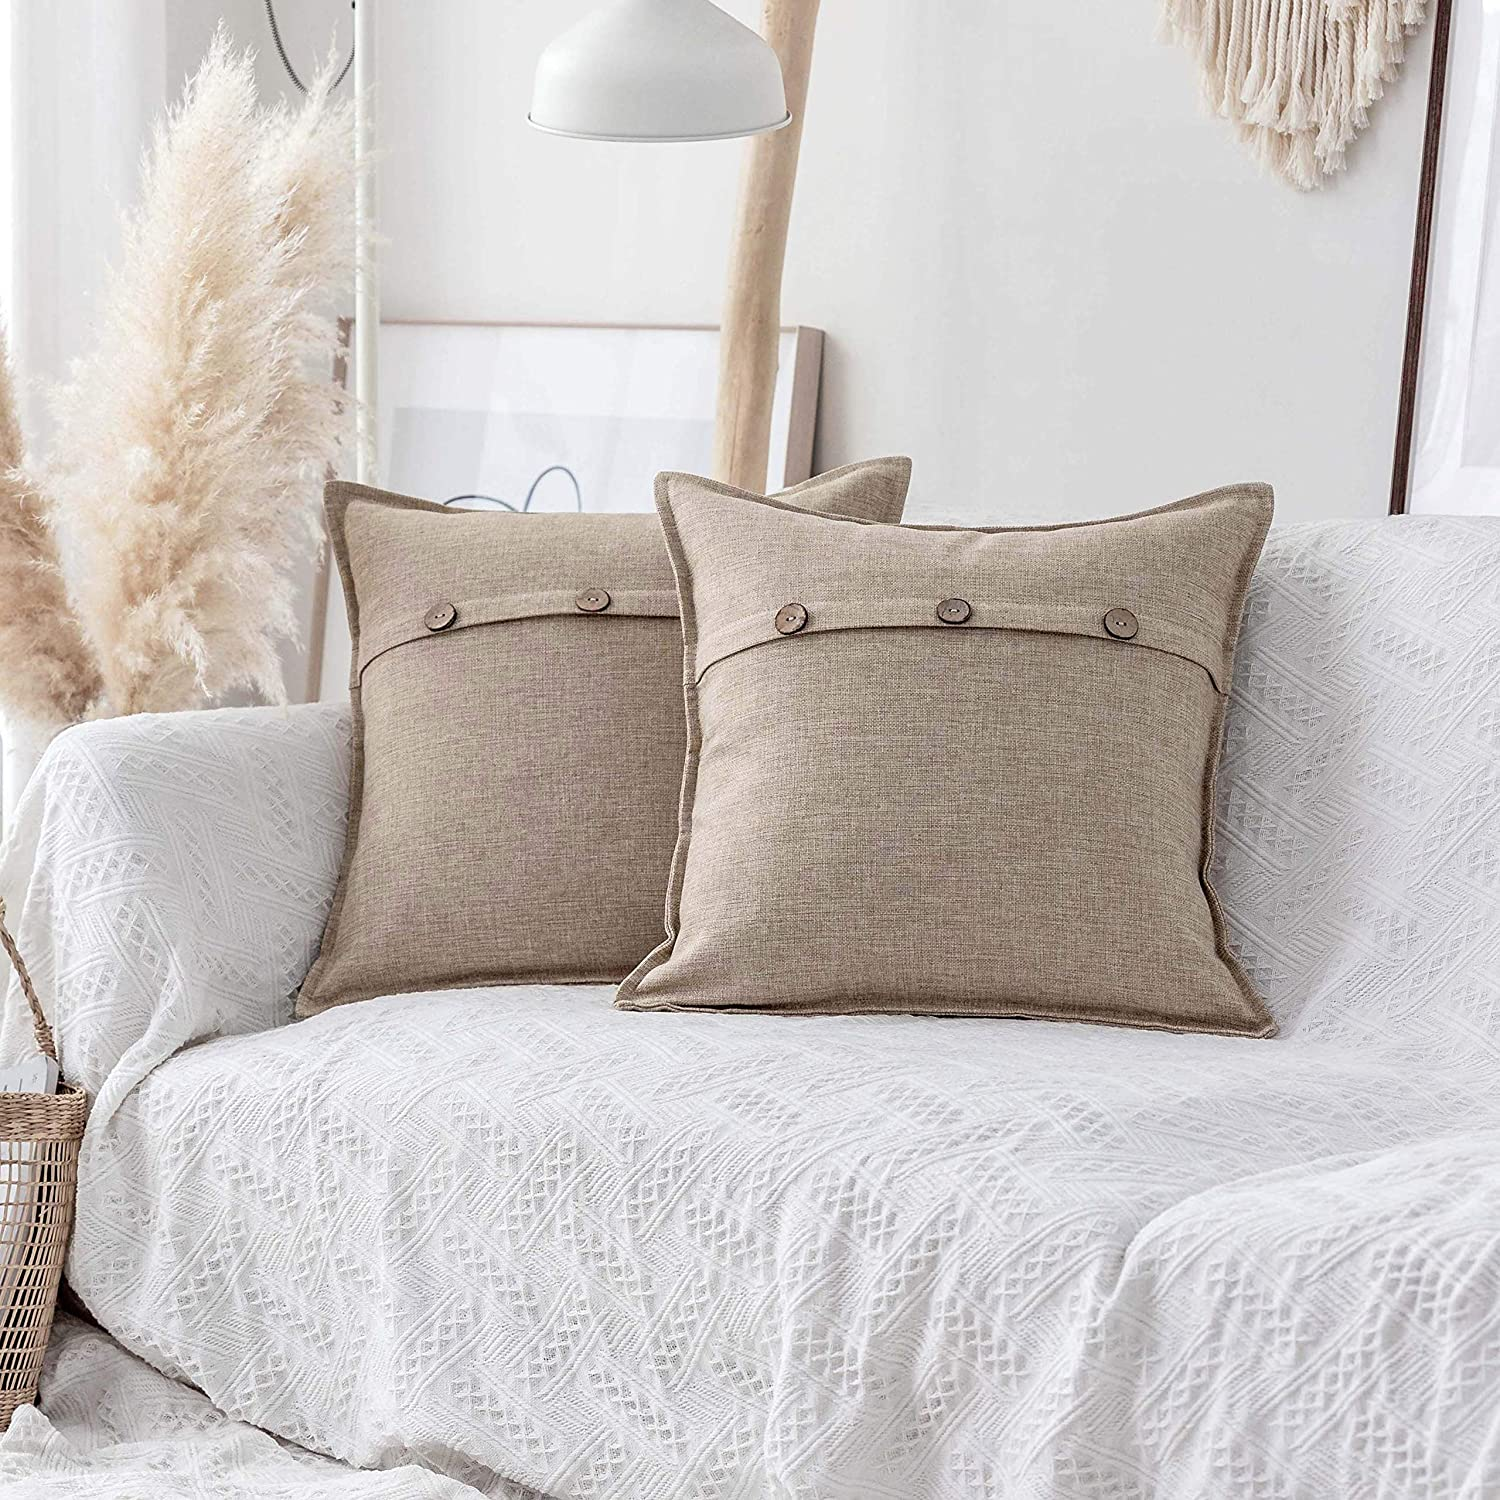 Home Brilliant Decorative Pillow Covers 2 Pcs Textured Burlap Button Pillowcases Decoration Farmhouse Holiday Decor Lined Linen Cushion Covers for Couch Living Room, 18x18 inches, Light Linen